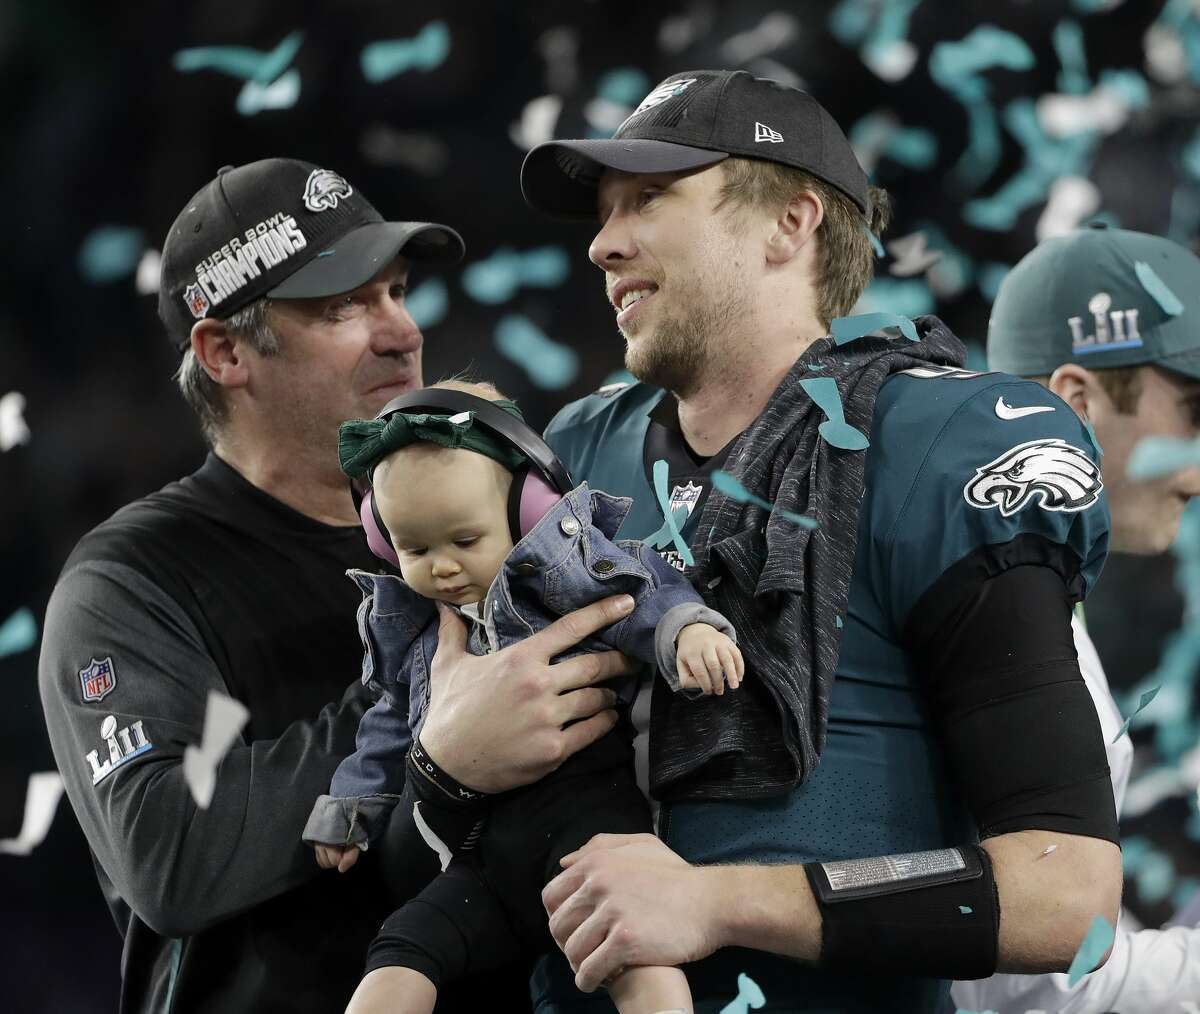 Last season ended with the Eagles winning their first Super Bowl crown thanks to unlikely hero Nick Foles. Is a repeat in store for the Birds?